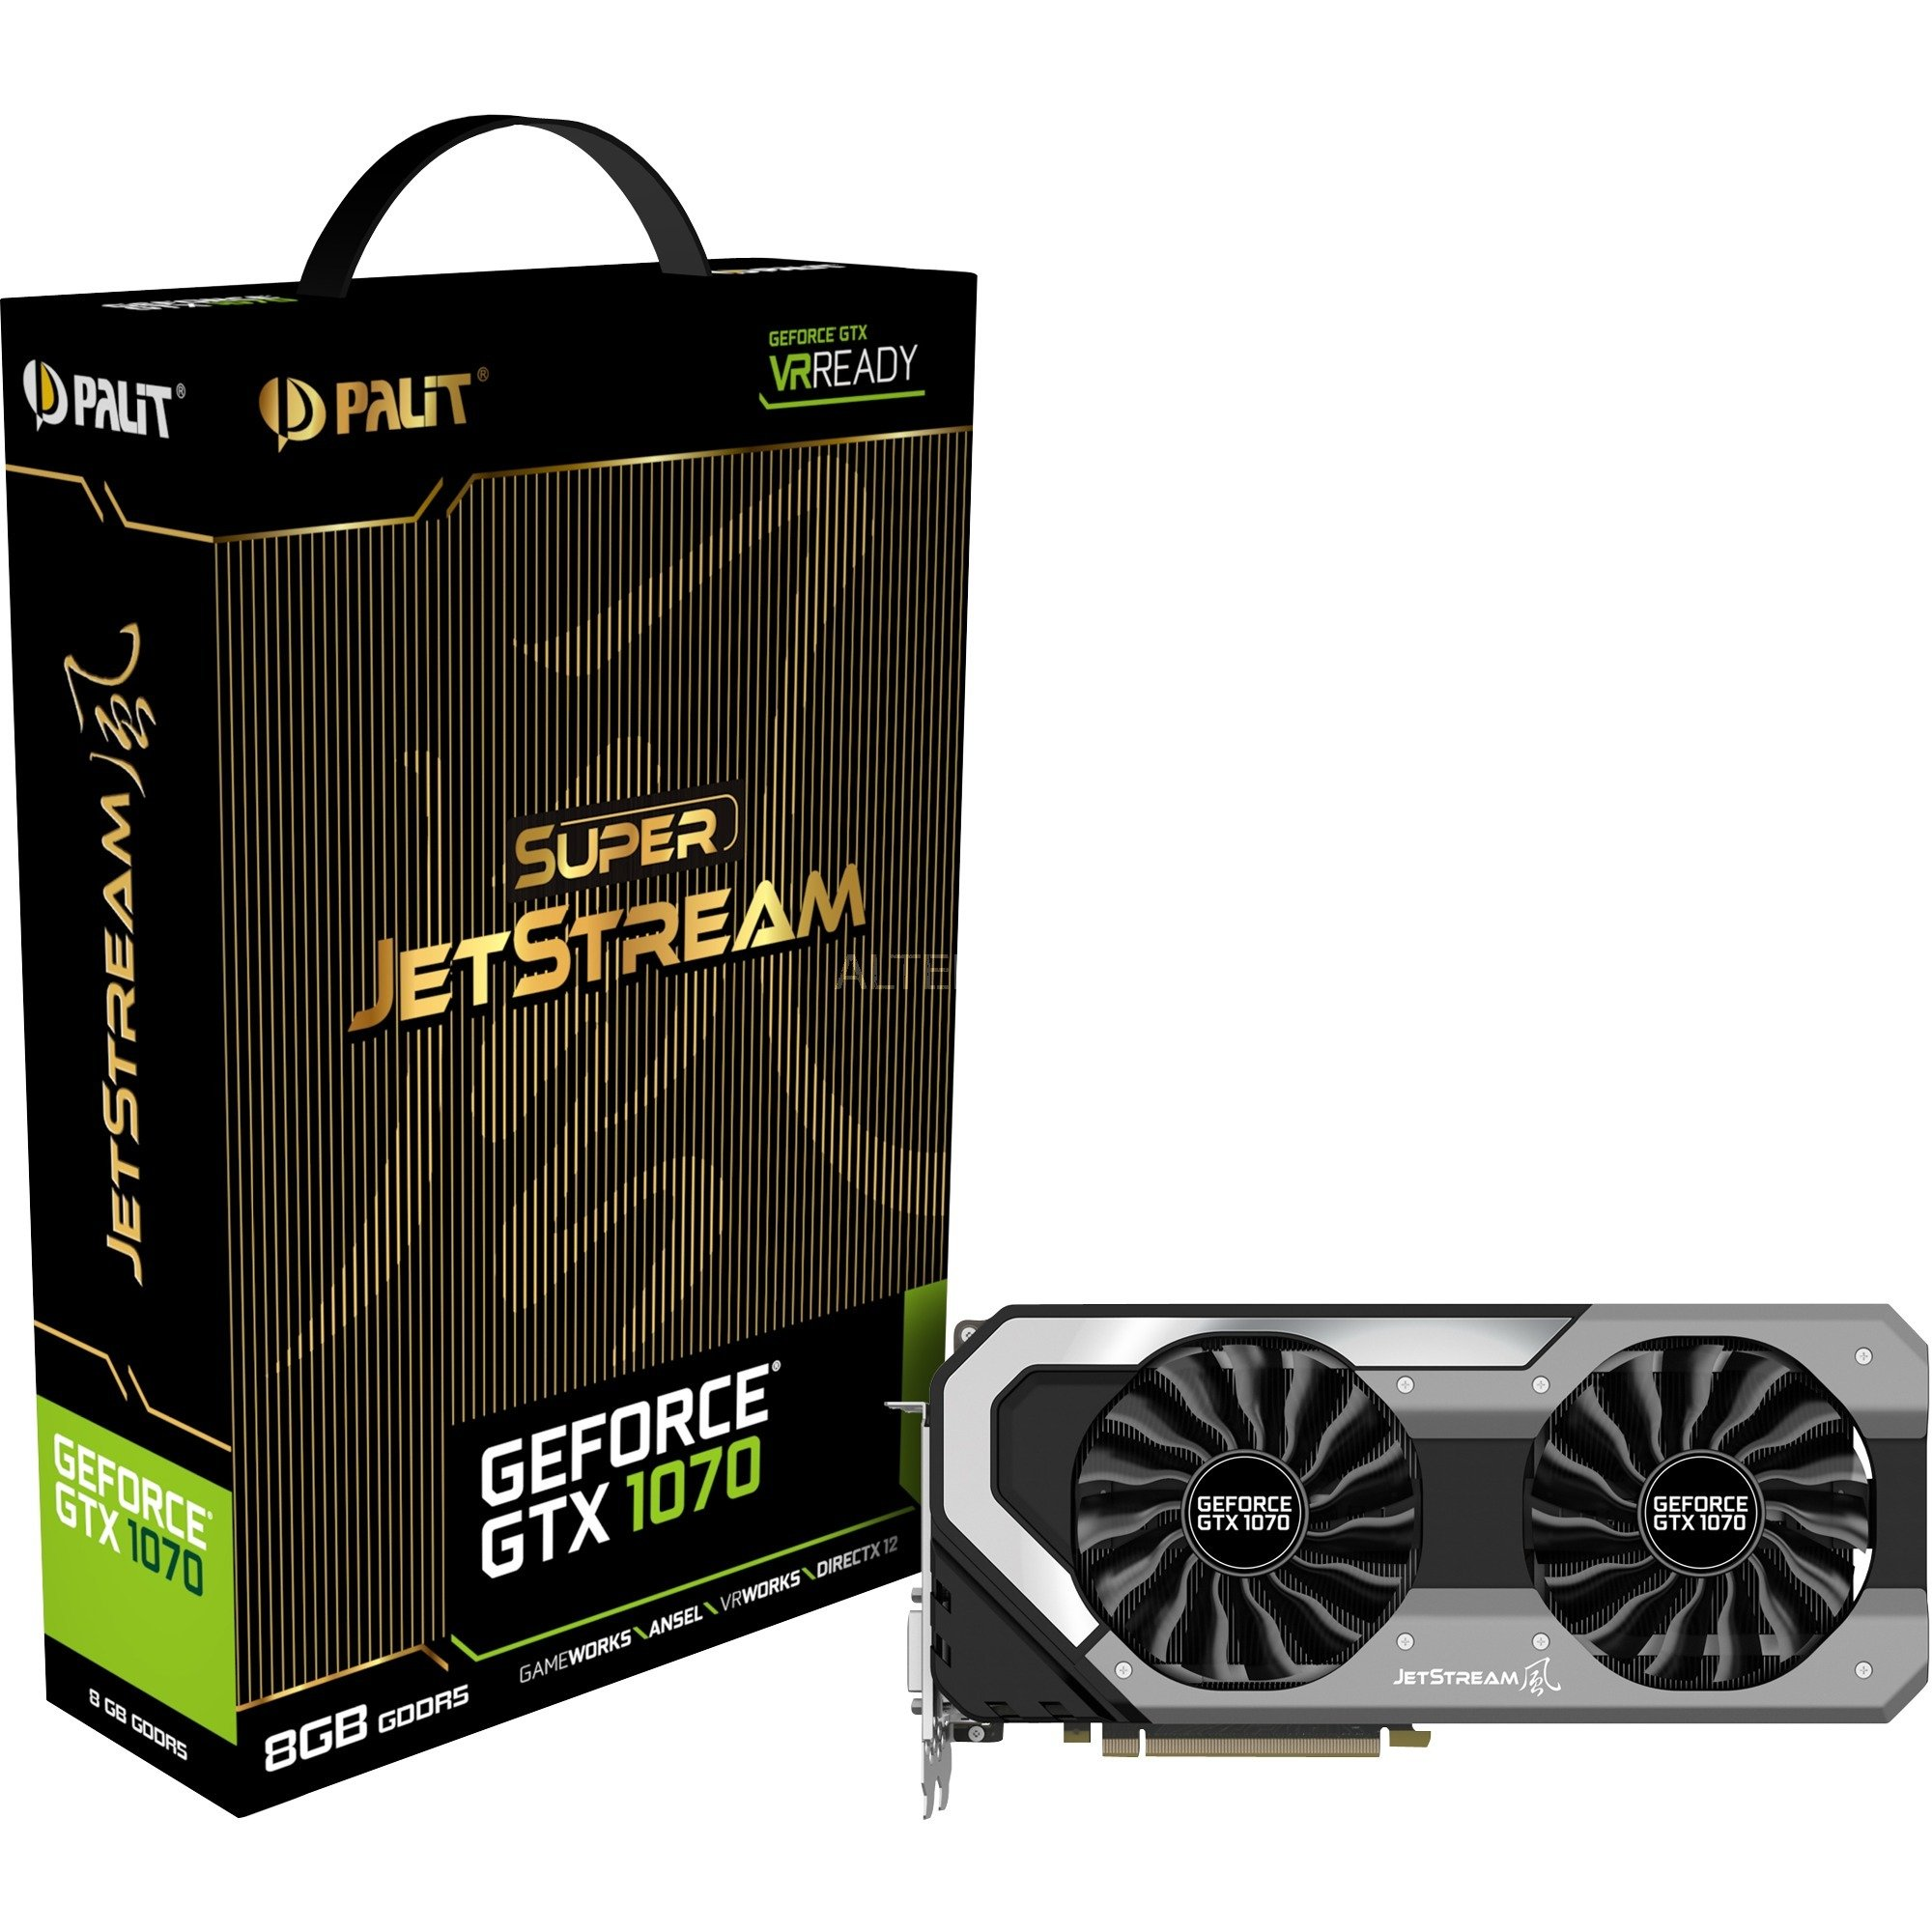 GeForce GTX 1070 Super Jetstream, Carte graphique